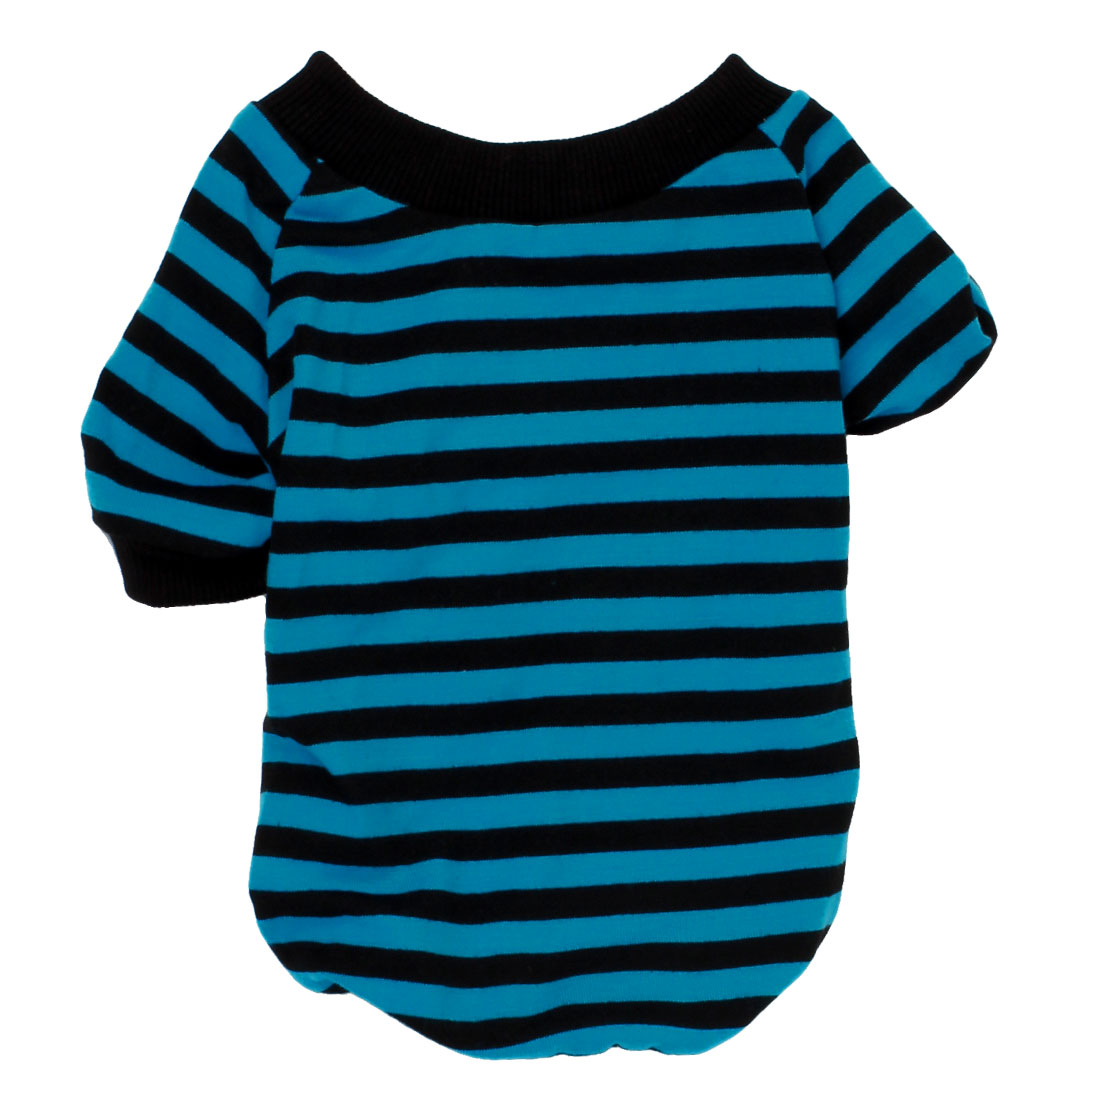 Pet Dog Chihuahua Stripe Pattern Sleeved Stretchy Apparel Coat Tee Shirt Black Blue Size XS